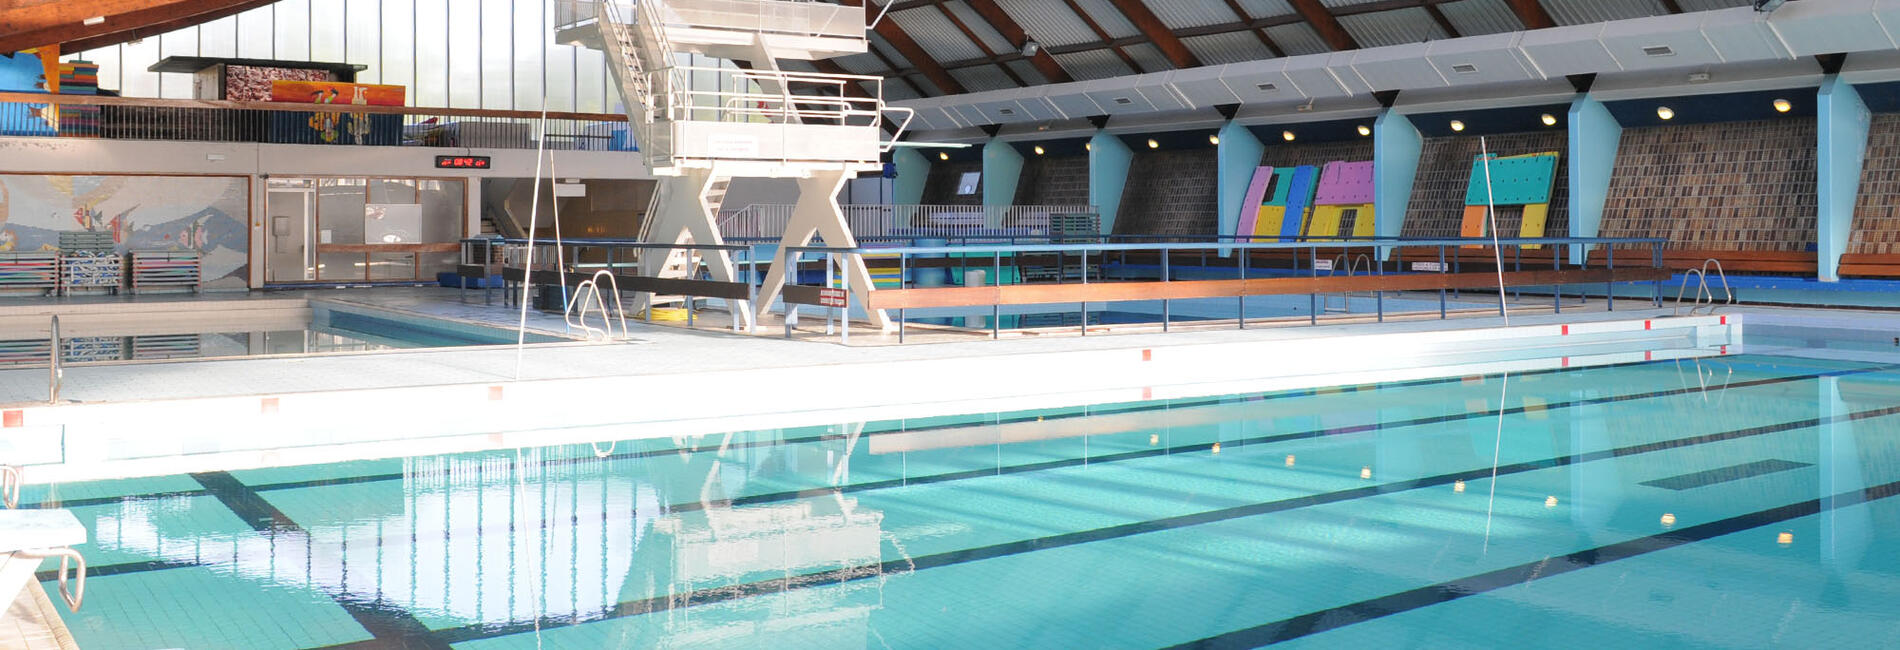 Ouverture piscine reims awesome ouverture piscine reims for Ouverture piscine